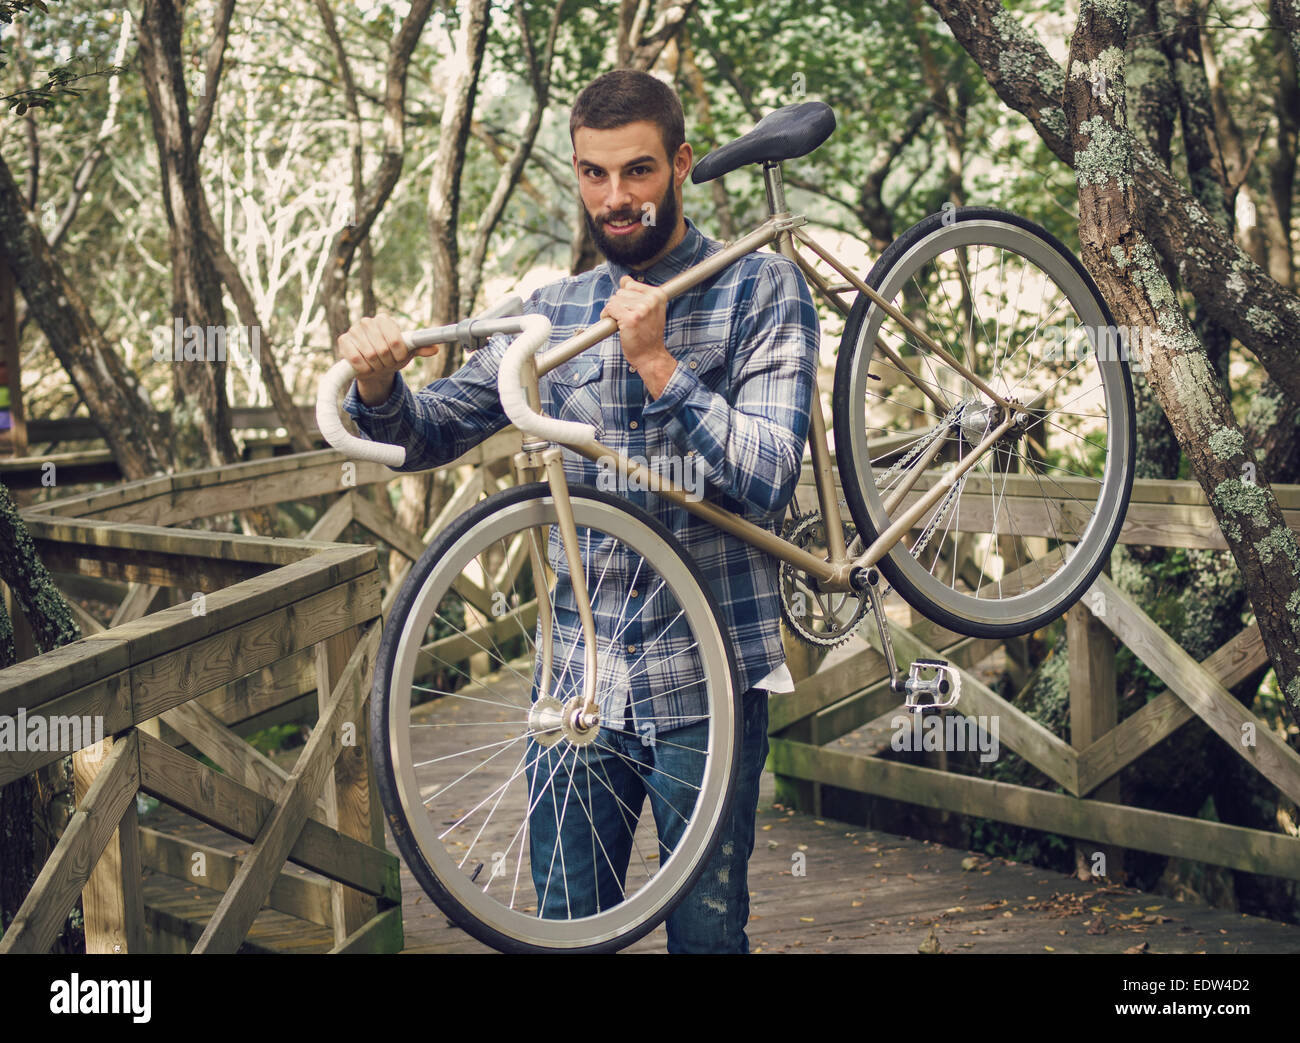 Hipster homme tenant son vélo dans un parc en plein air Photo Stock